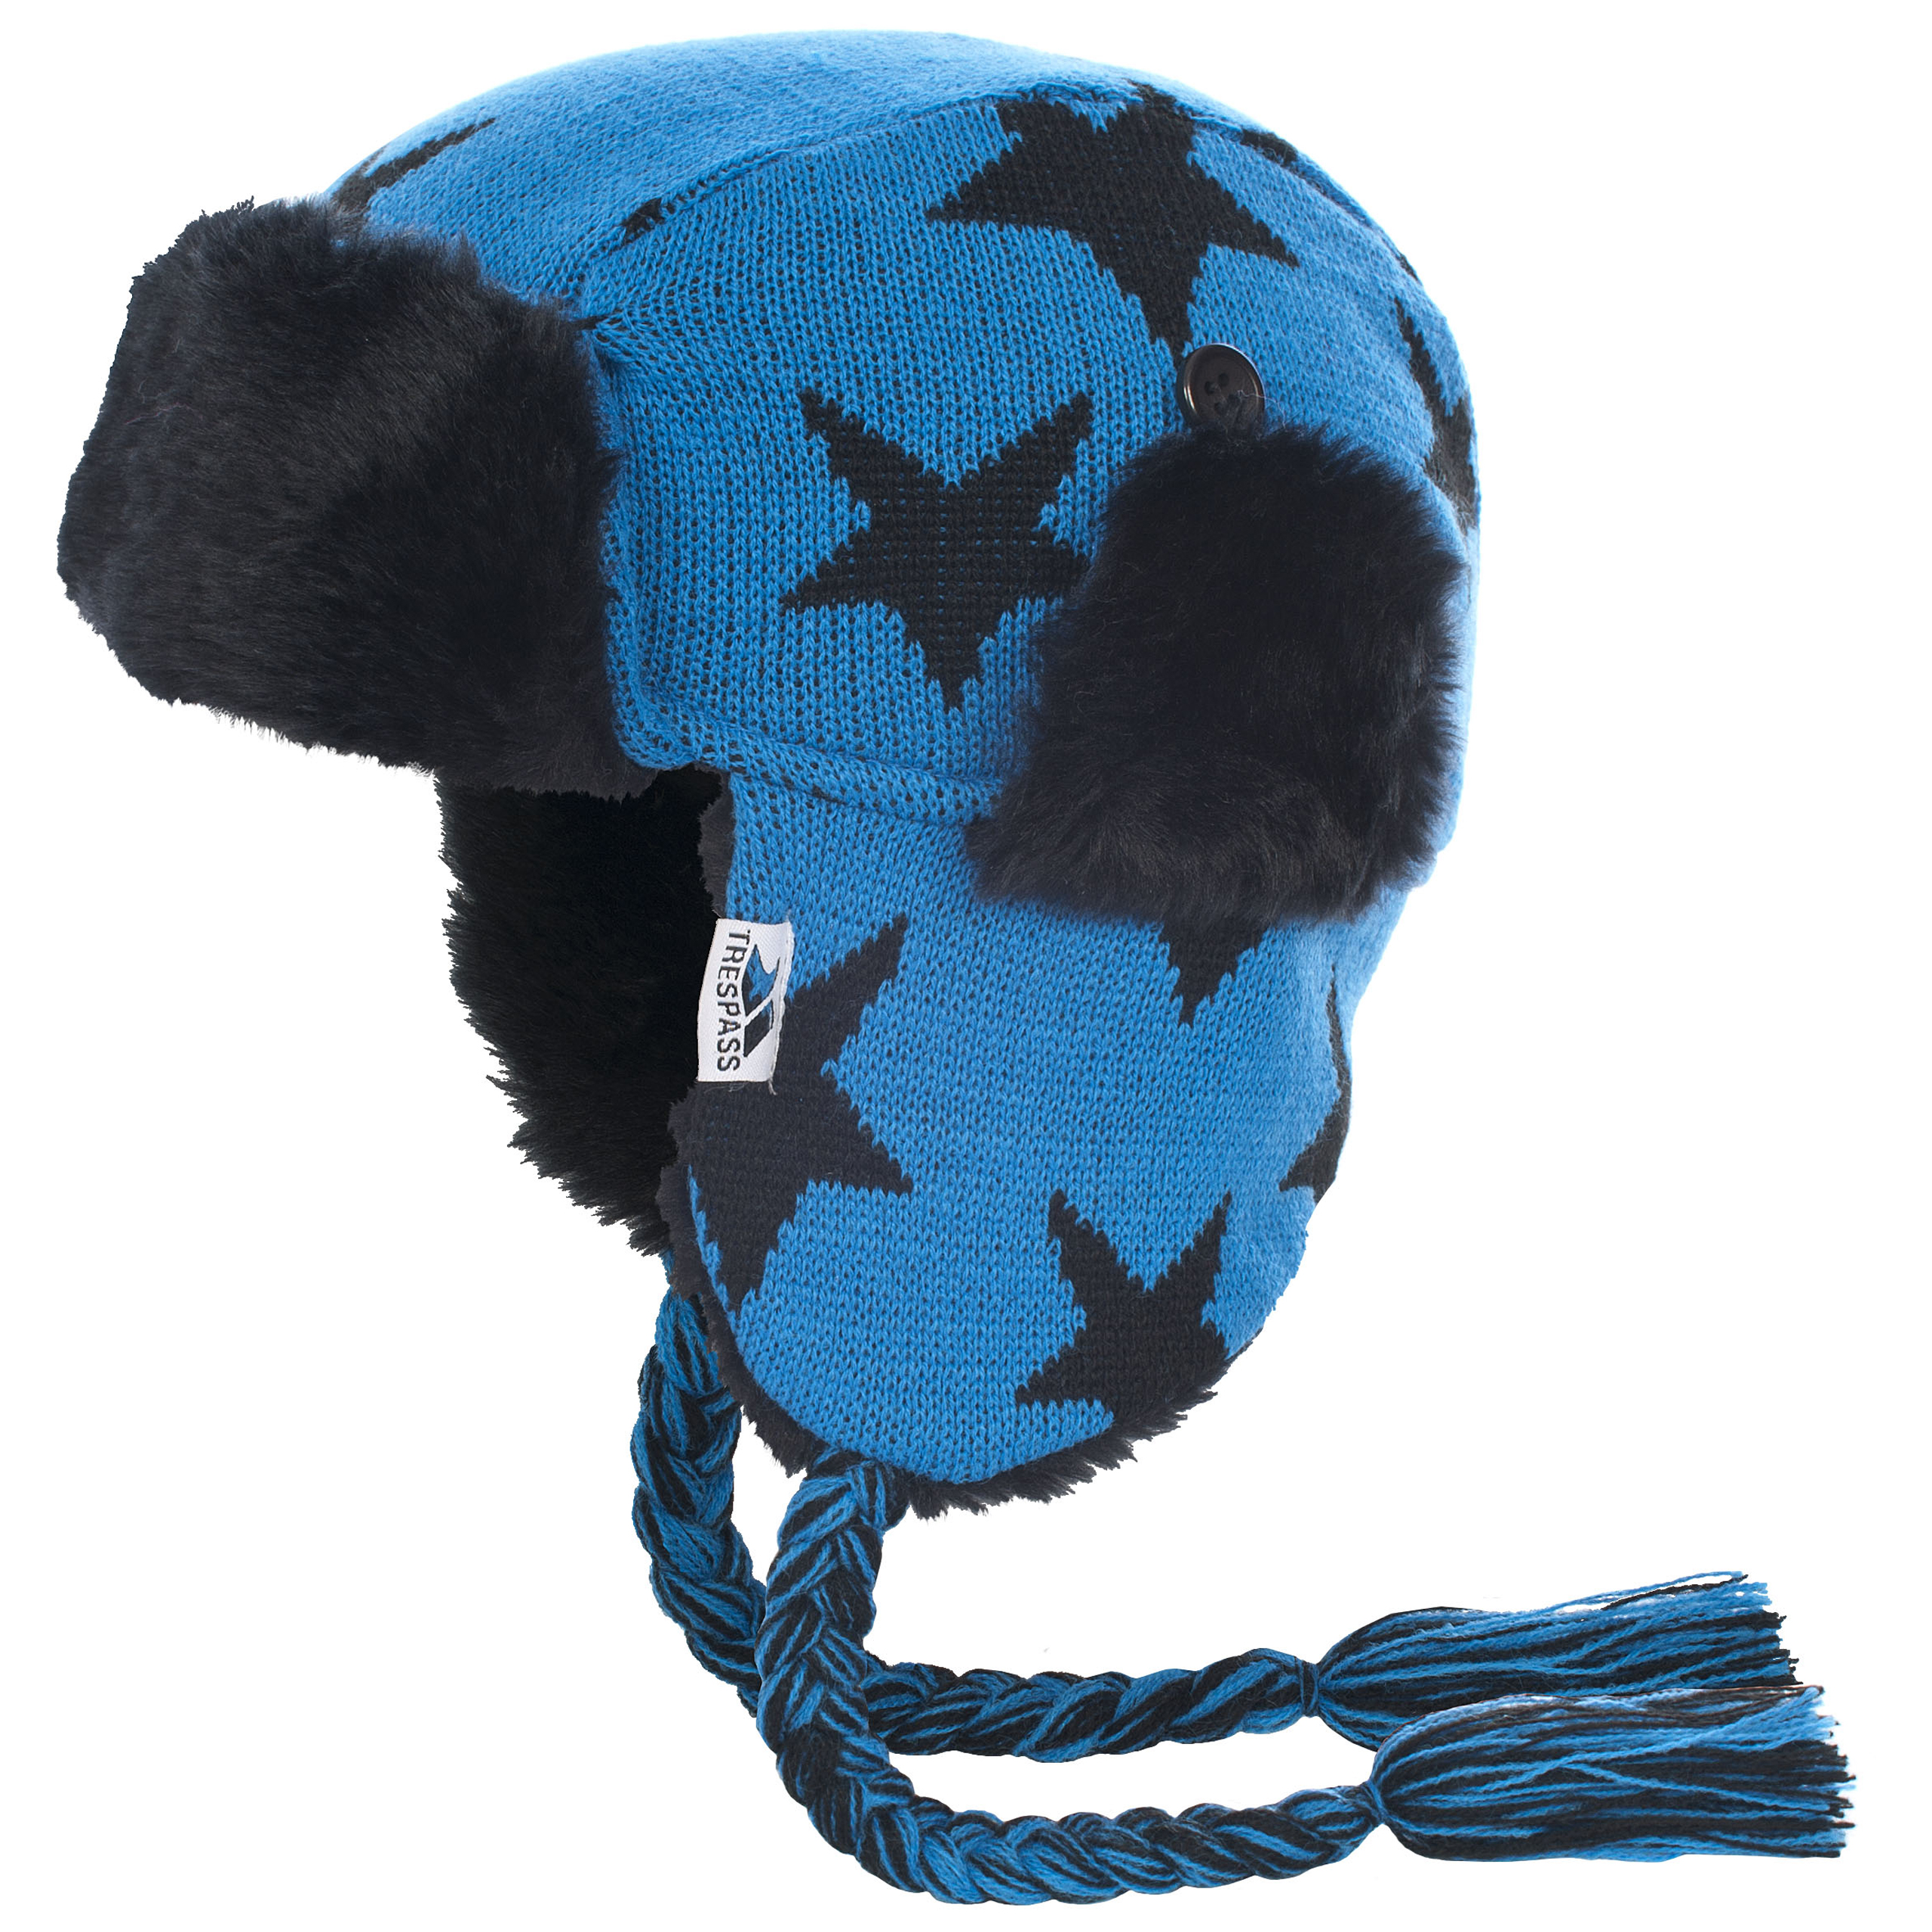 Find great deals on eBay for youth trapper hat. Shop with confidence. Skip to main content. eBay: NICE CAPS Boys Kids Children Youth Winter Snow Trapper Hat Headwear with Flaps See more like this. NIKE YOUTH TRAPPER/AVIATOR HAT GRAY SIZE 8 .